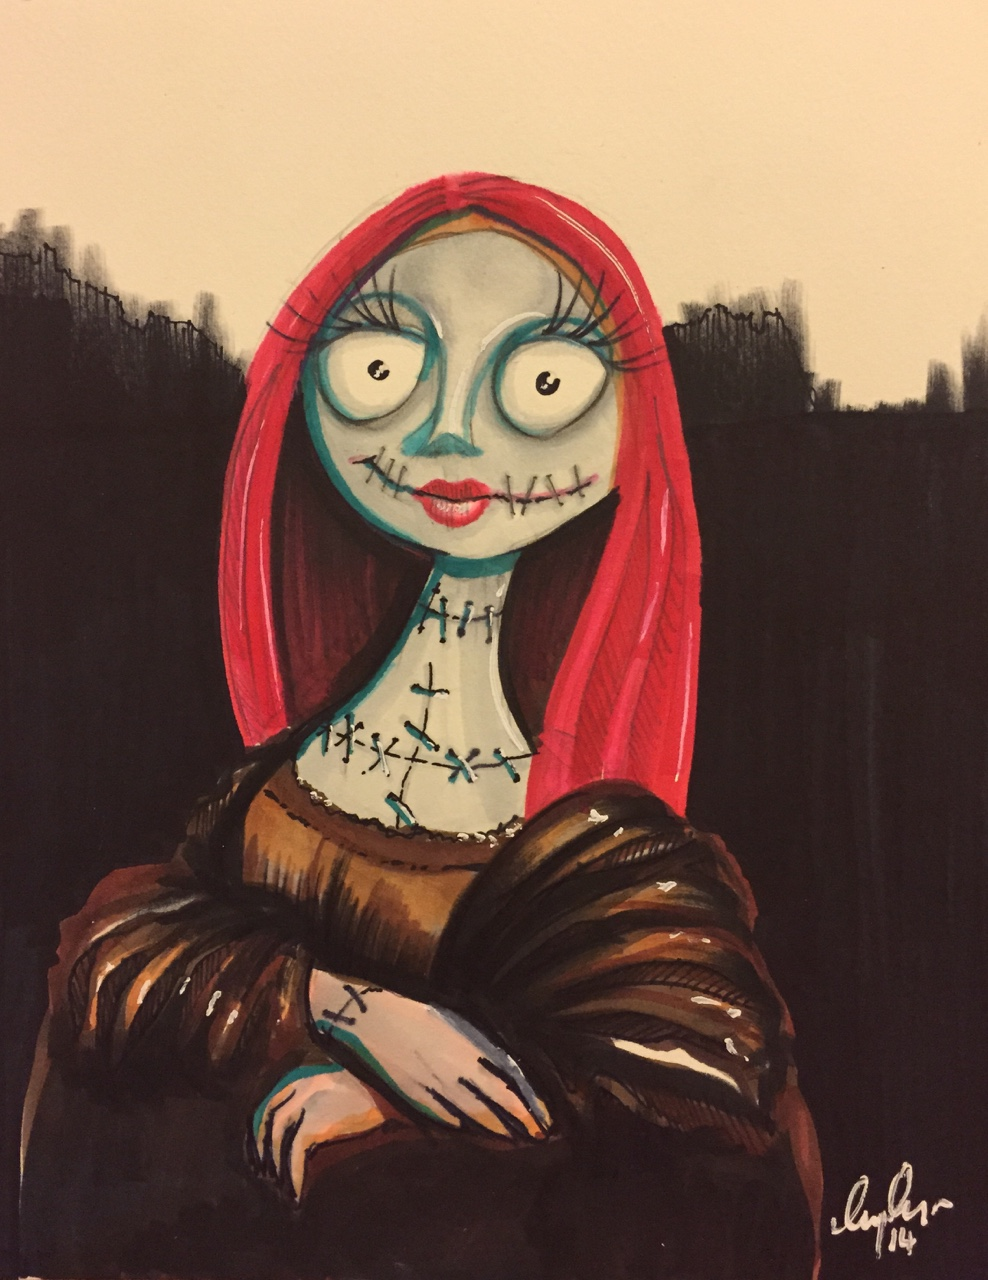 106391366746 - sally from the nightmare before christmas as the.jpg